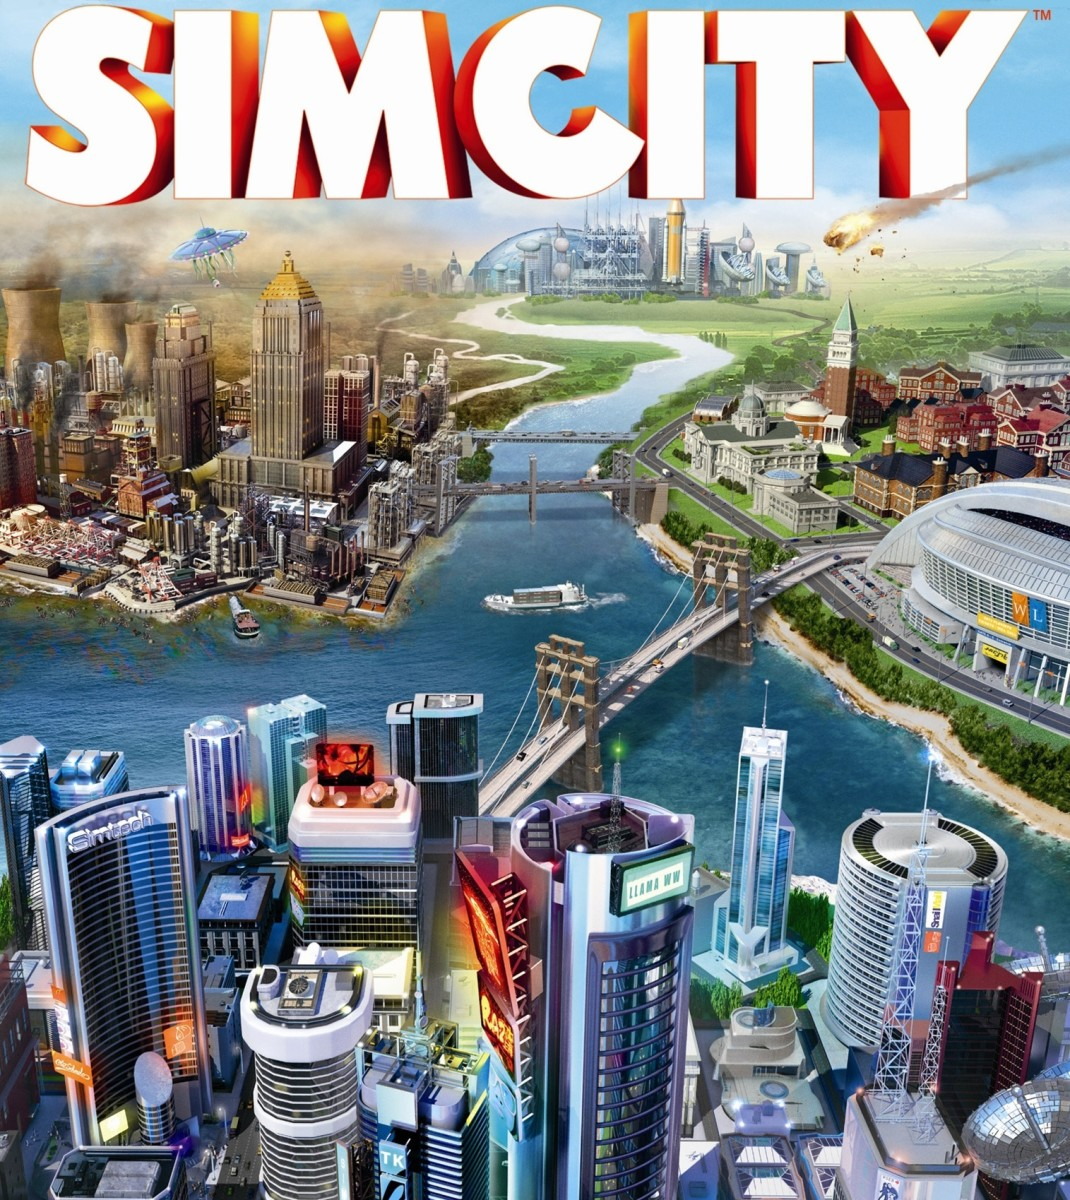 Digging Your Way to Riches - A Metals Specialization Guide for SimCity 2013